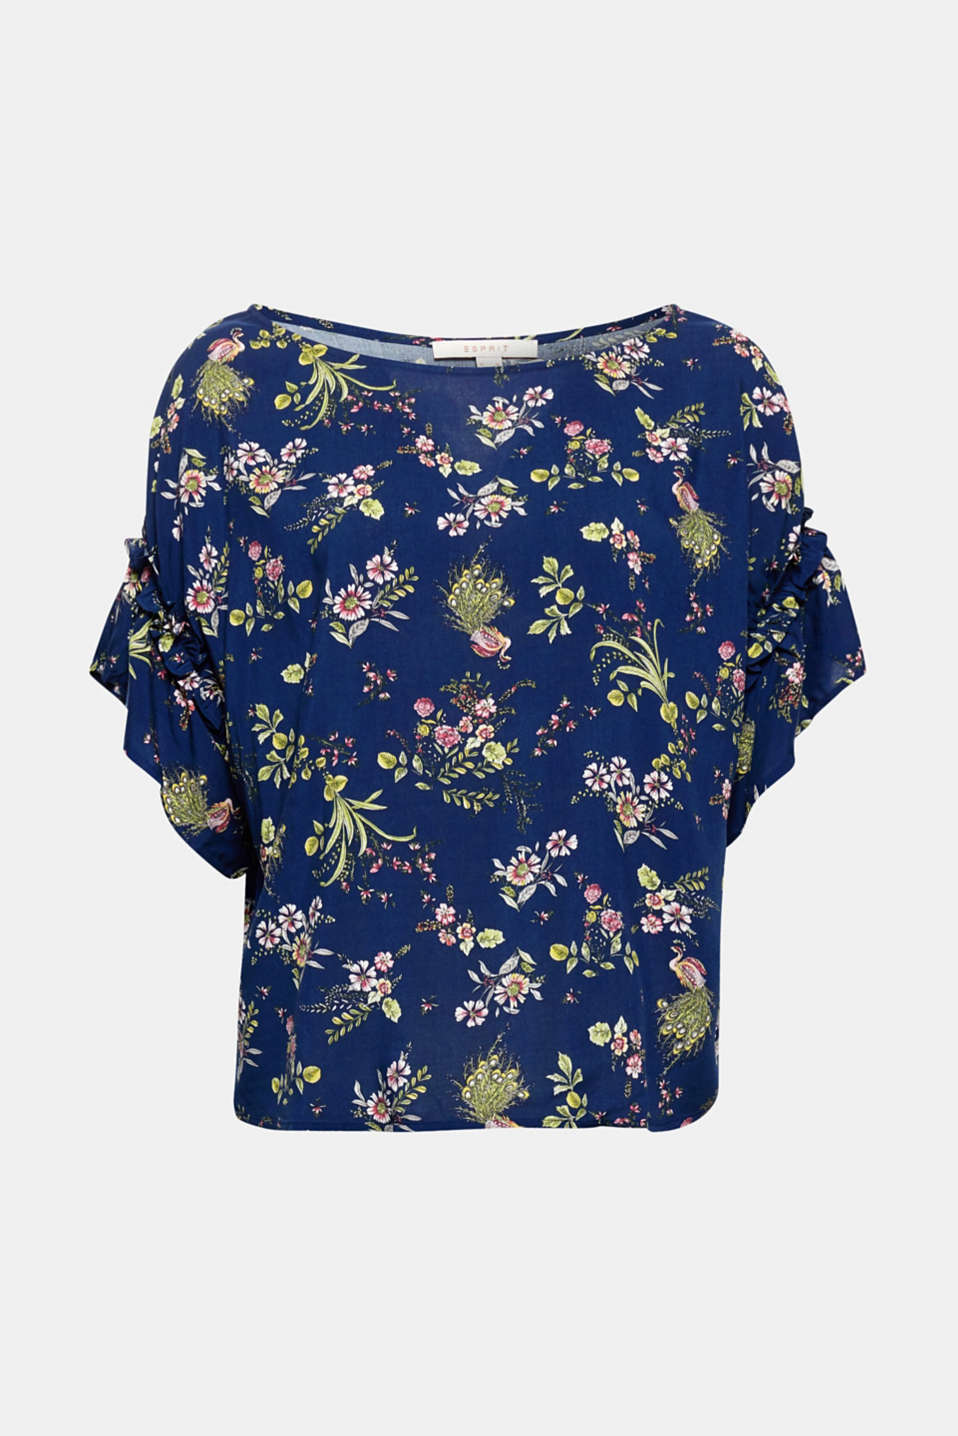 For your romantic trend look: flowing blouse top in a boxy, cropped cut with an attractive floral print and pretty wing sleeves.